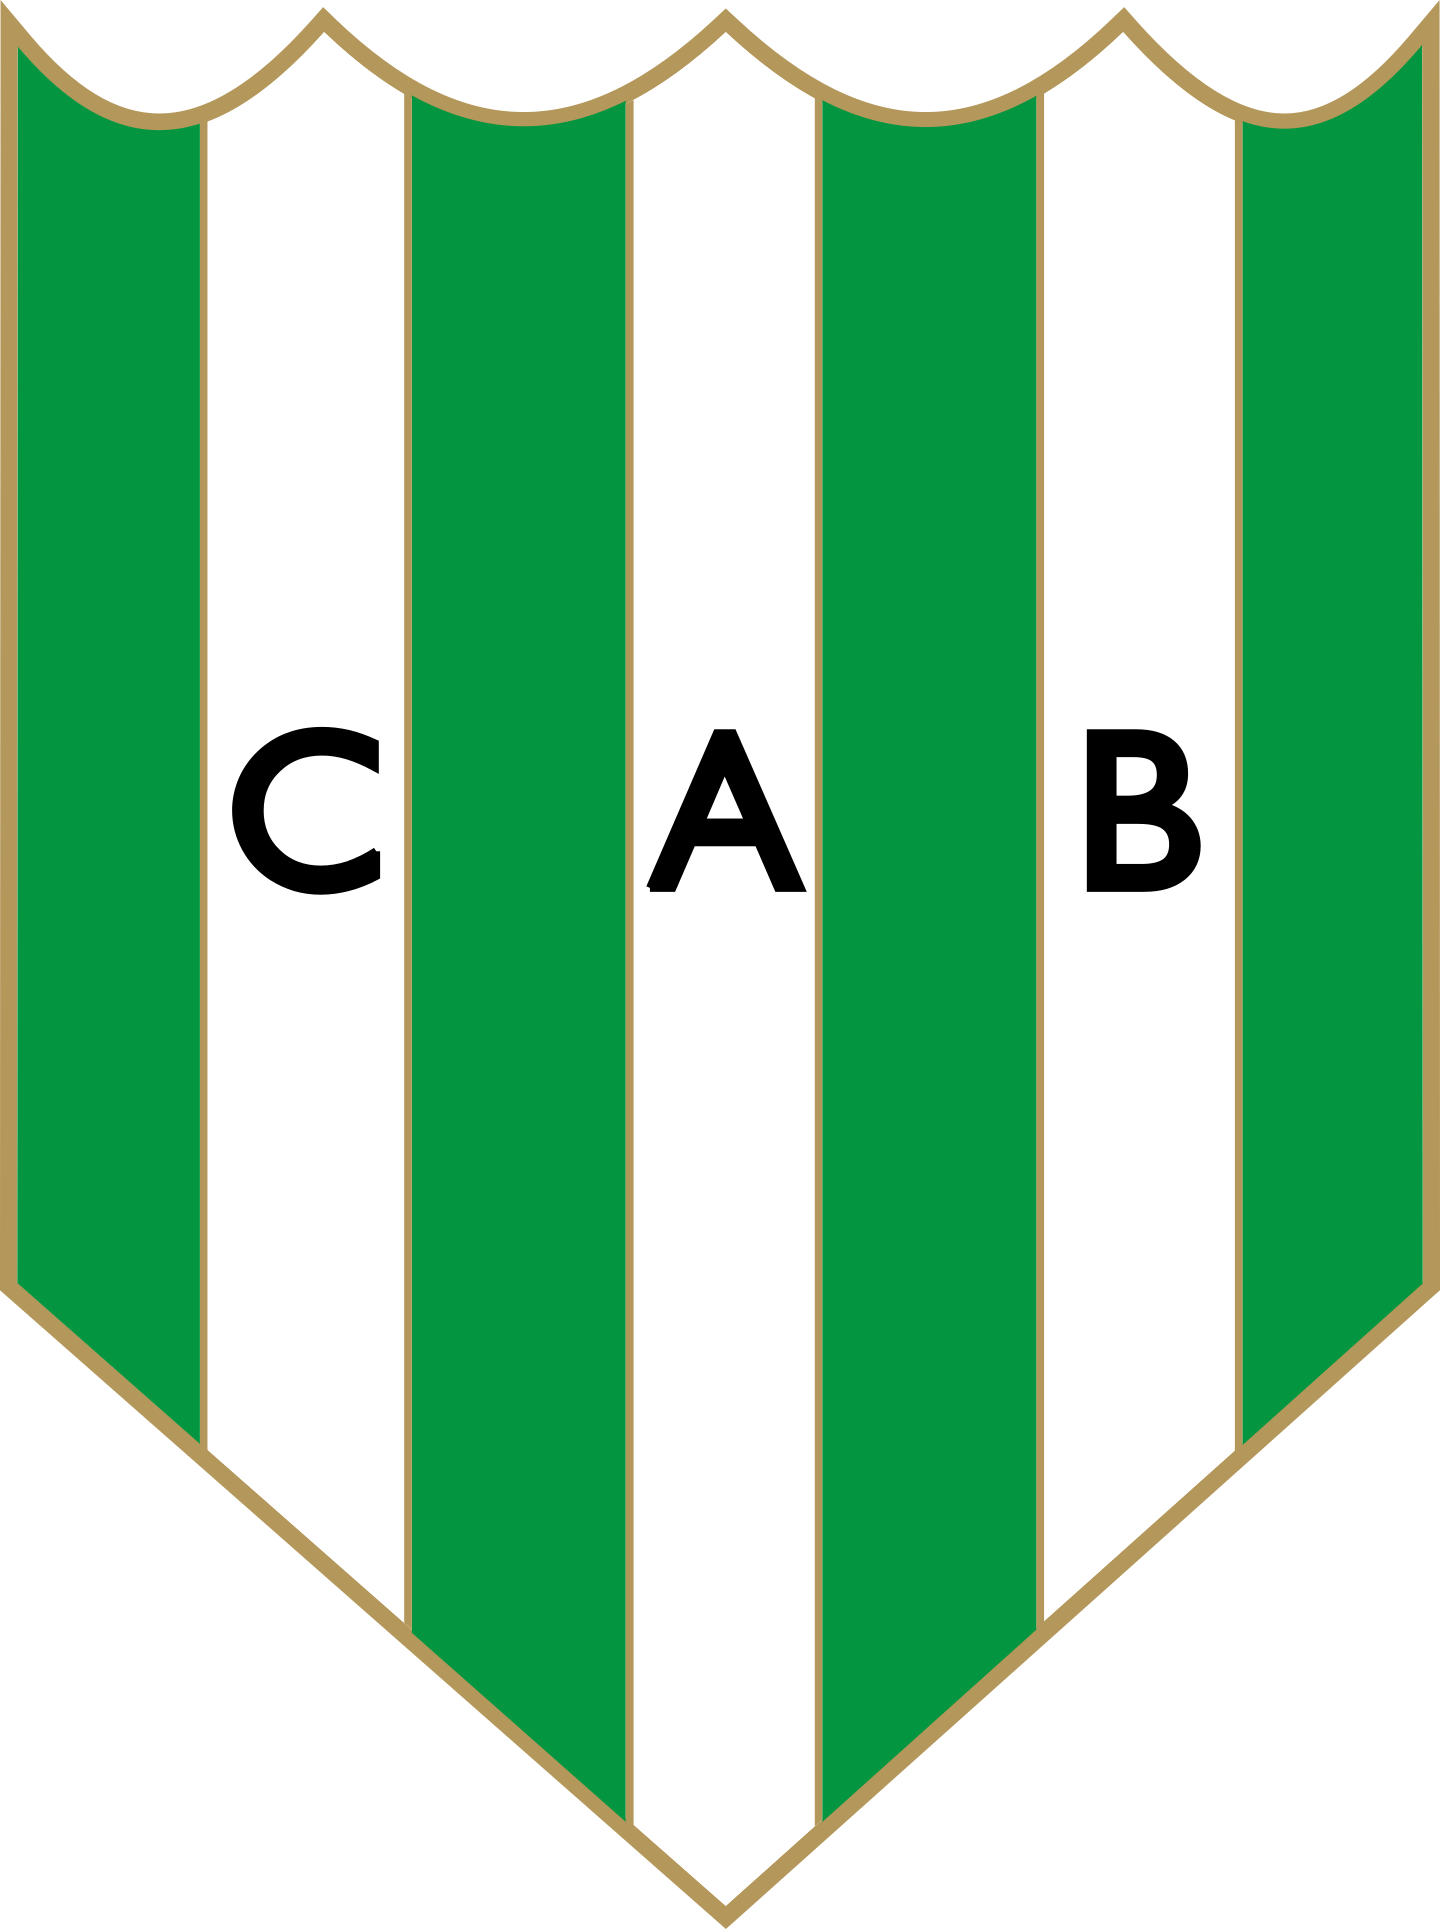 banfield logo 2 - Club Atlético Banfield Logo